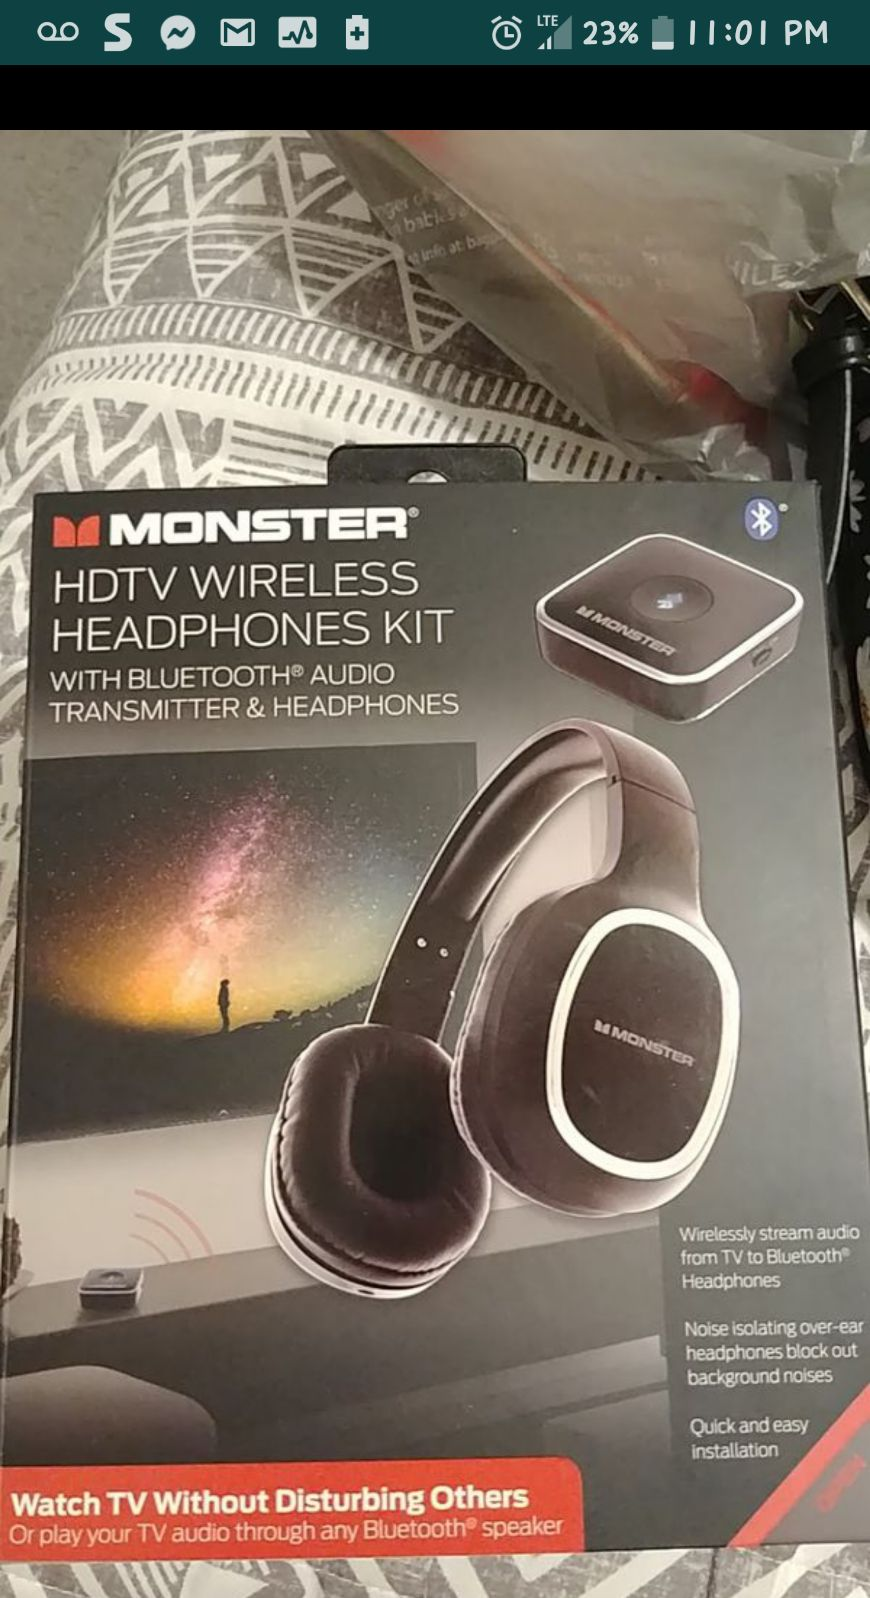 HDTV wireless headphones kit